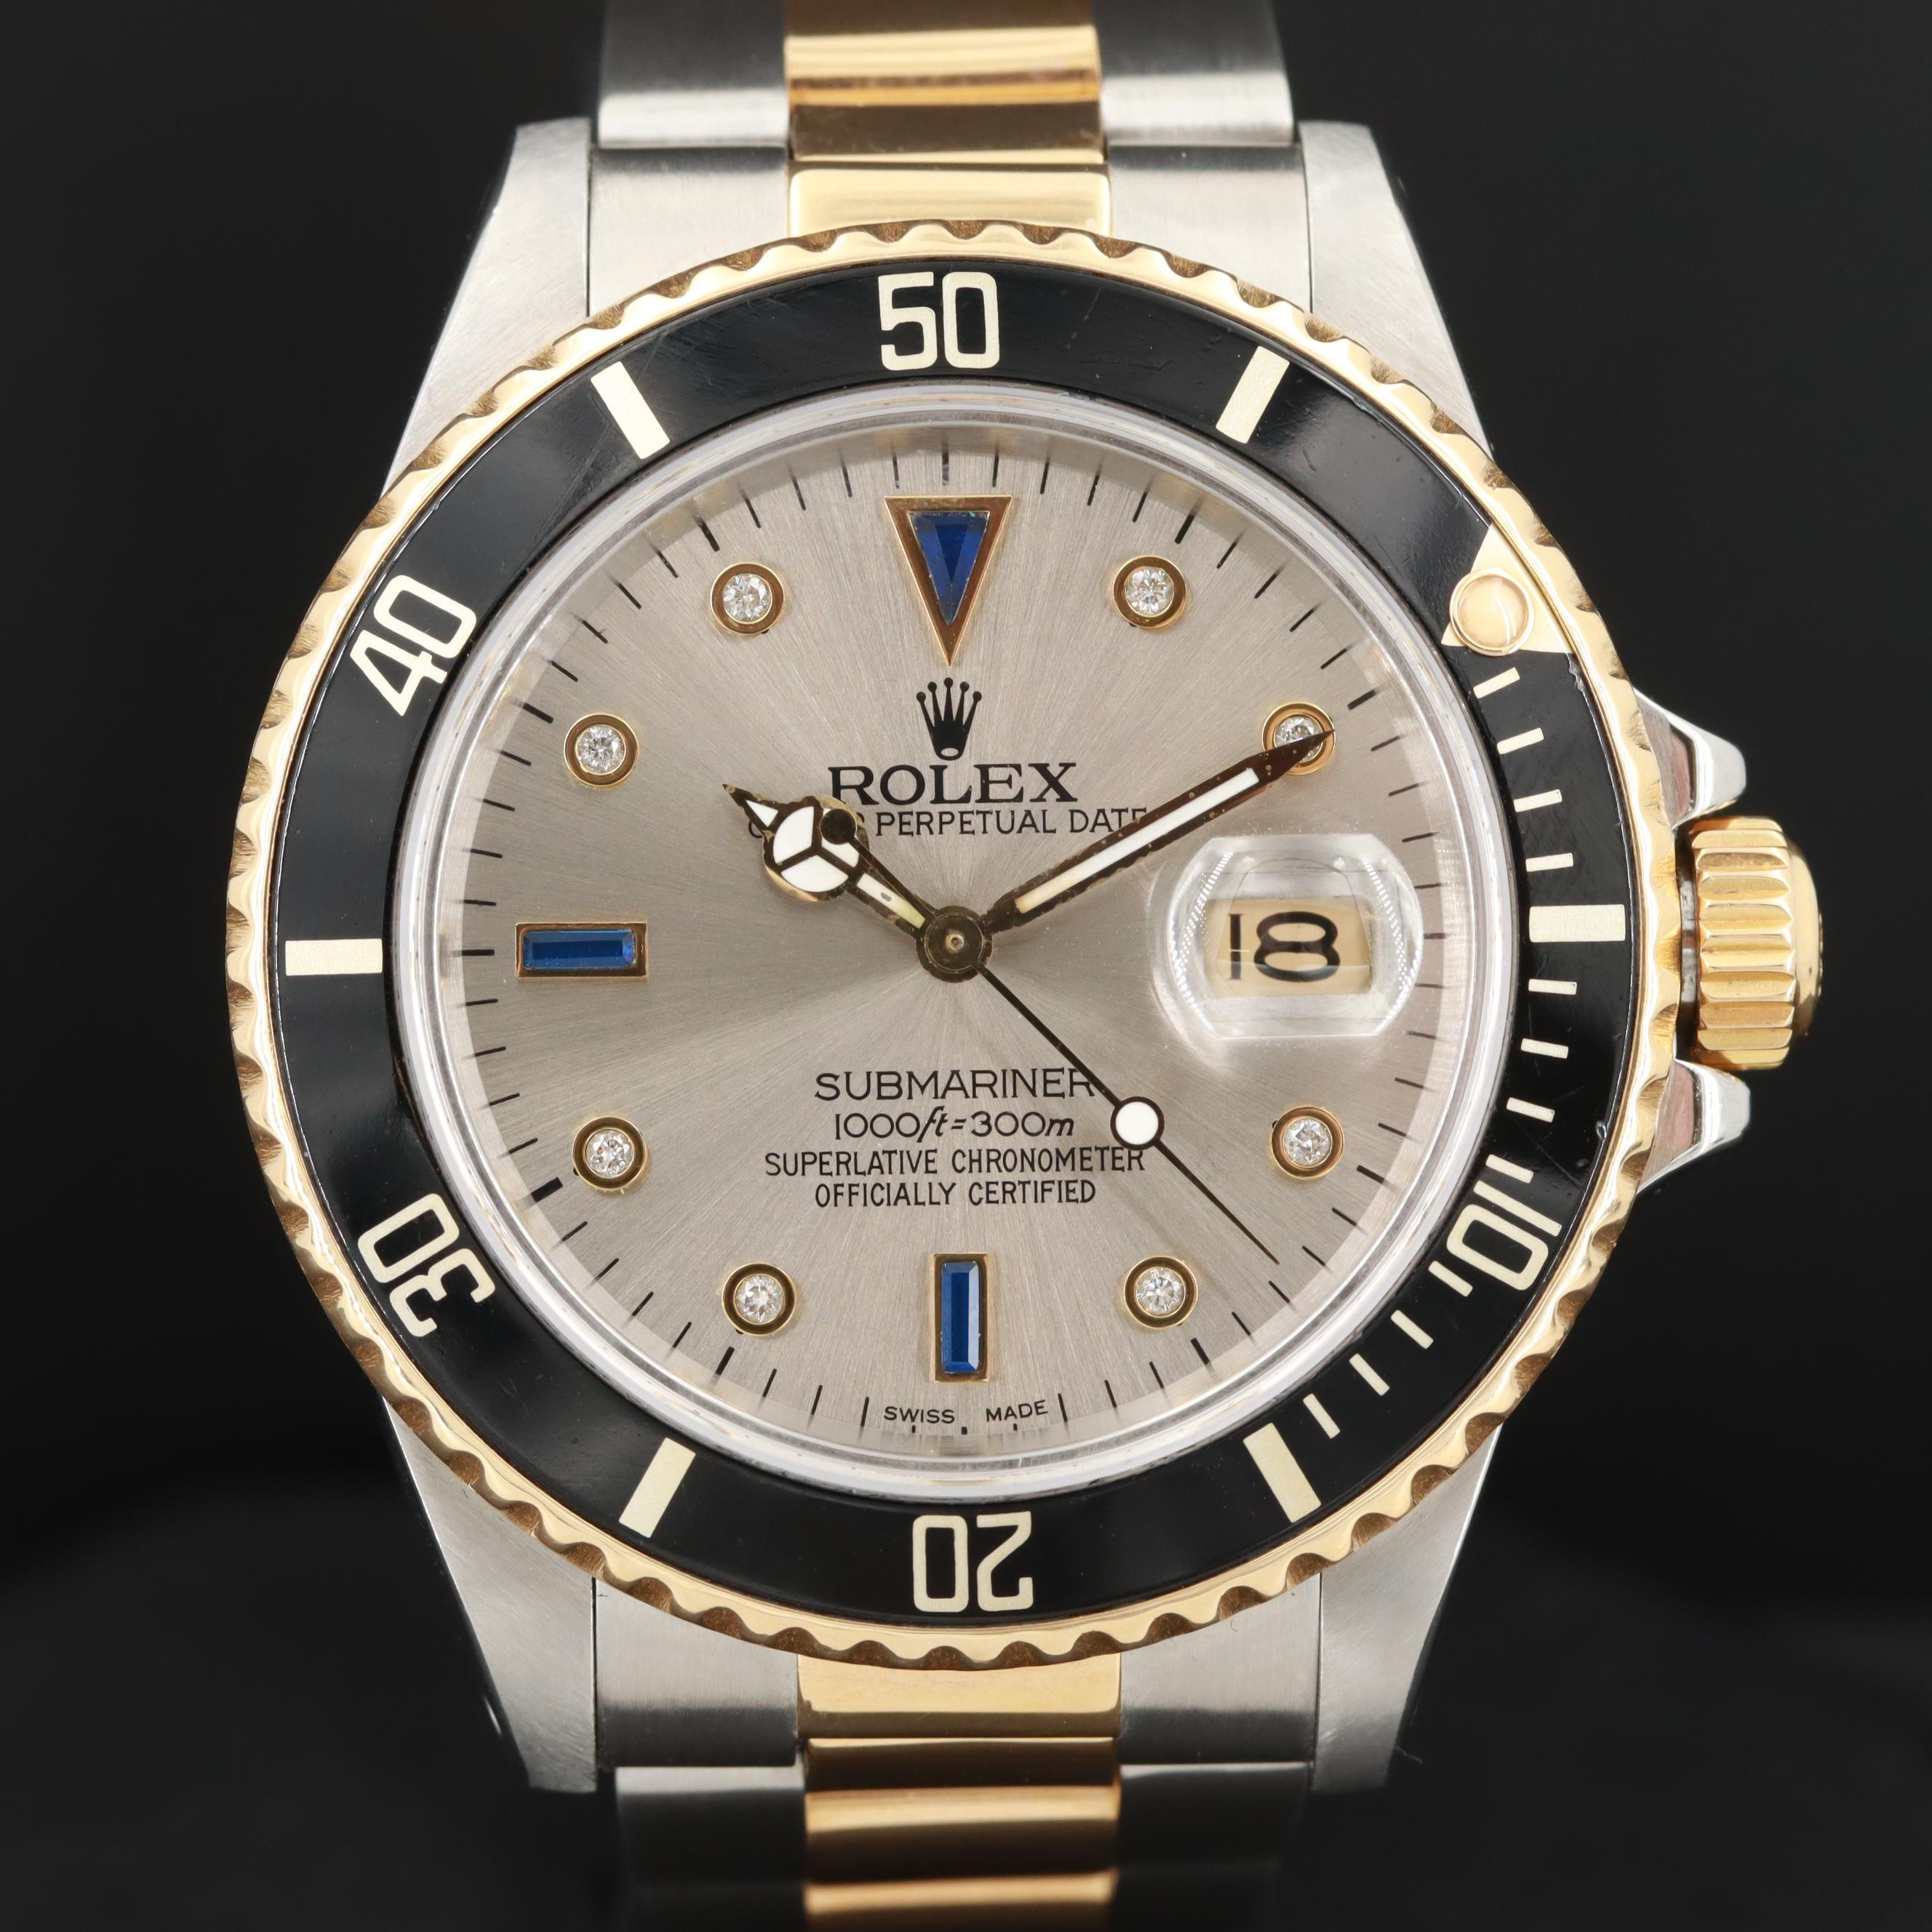 Rolex Submariner Two-Tone Wristwatch With Aftermarket Diamond Dial, 1988